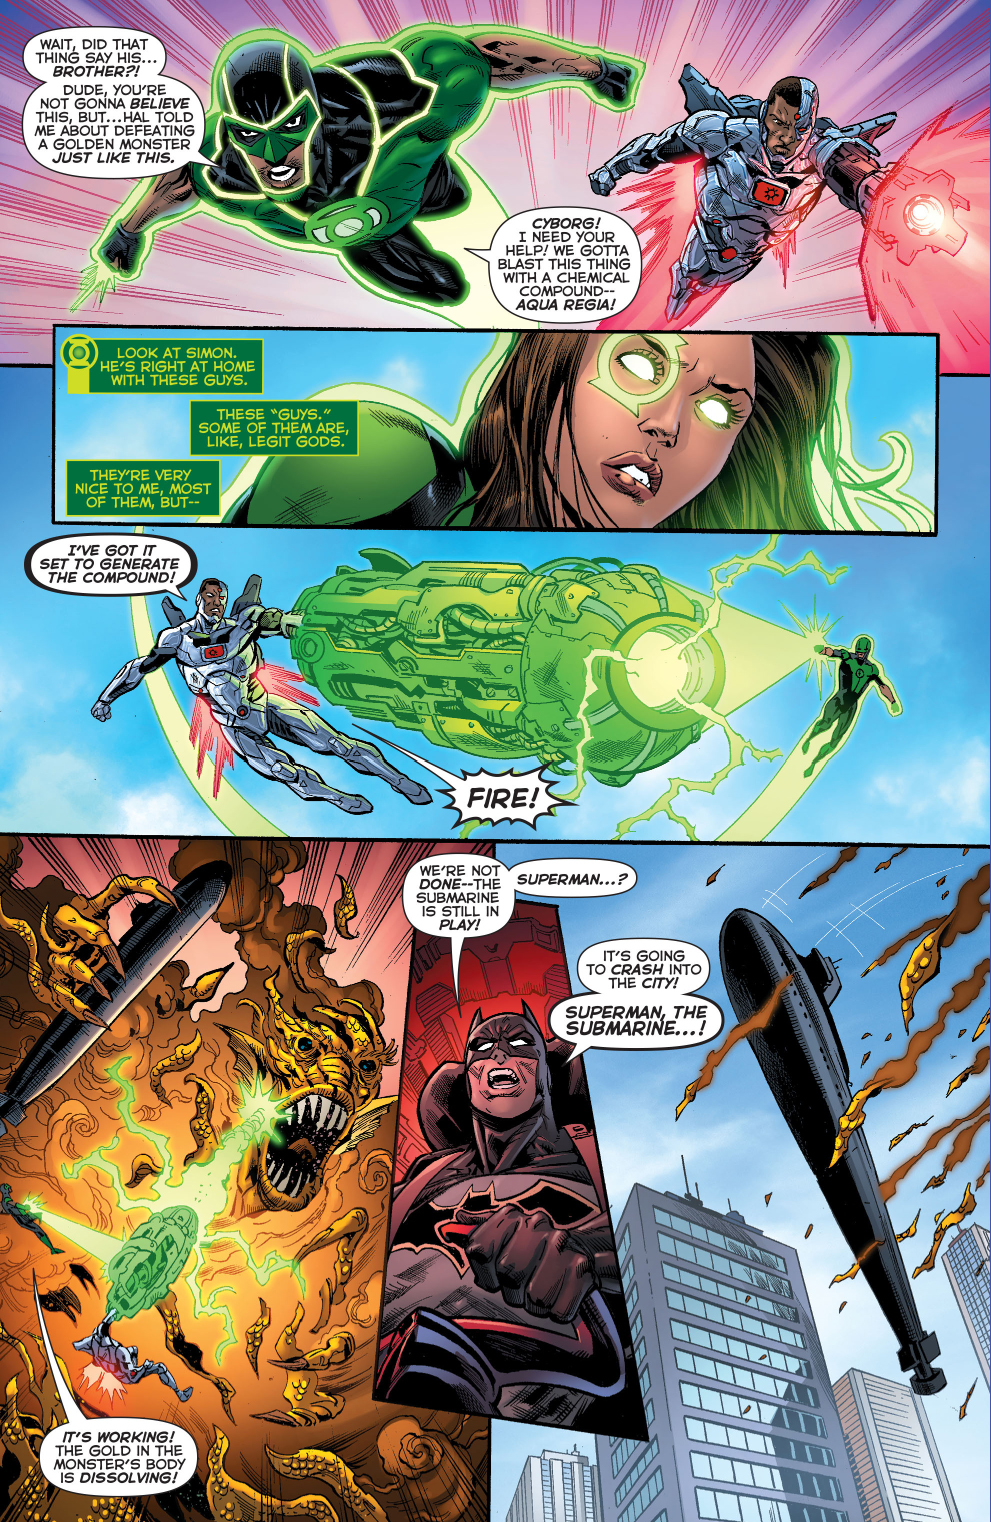 the-justice-league-vs-a-giant-golden-monster